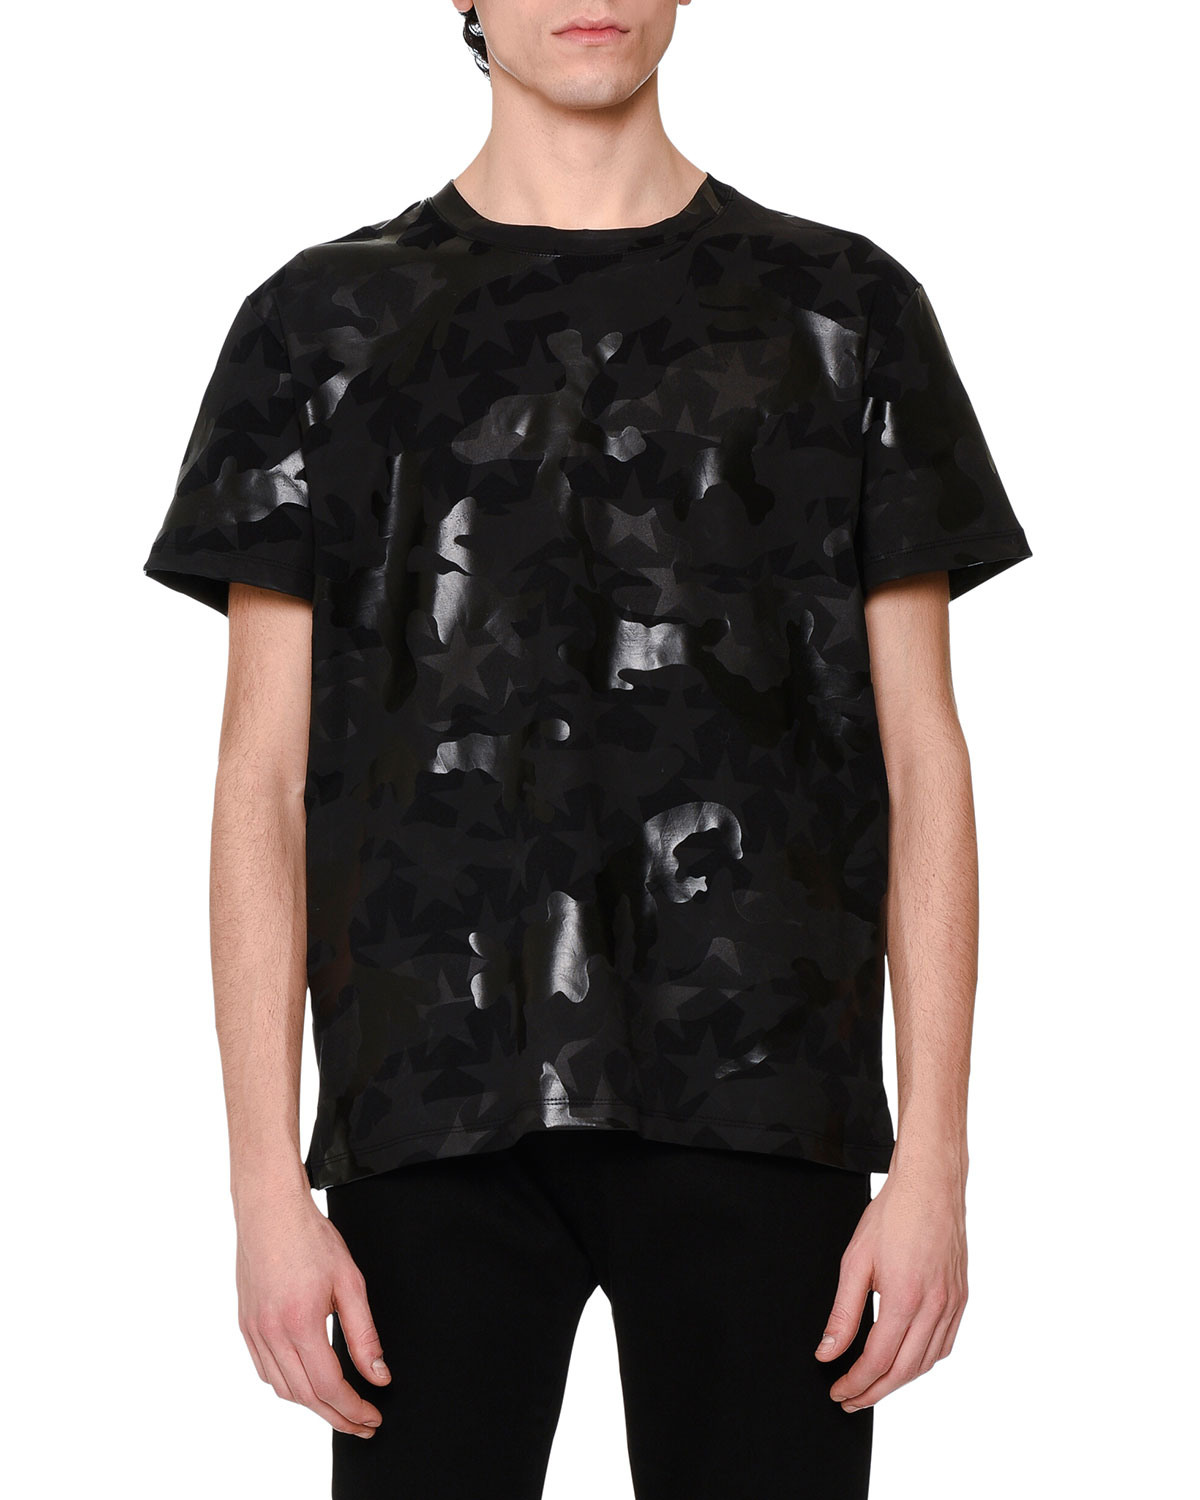 Camo & Star-Print T-Shirt, Black